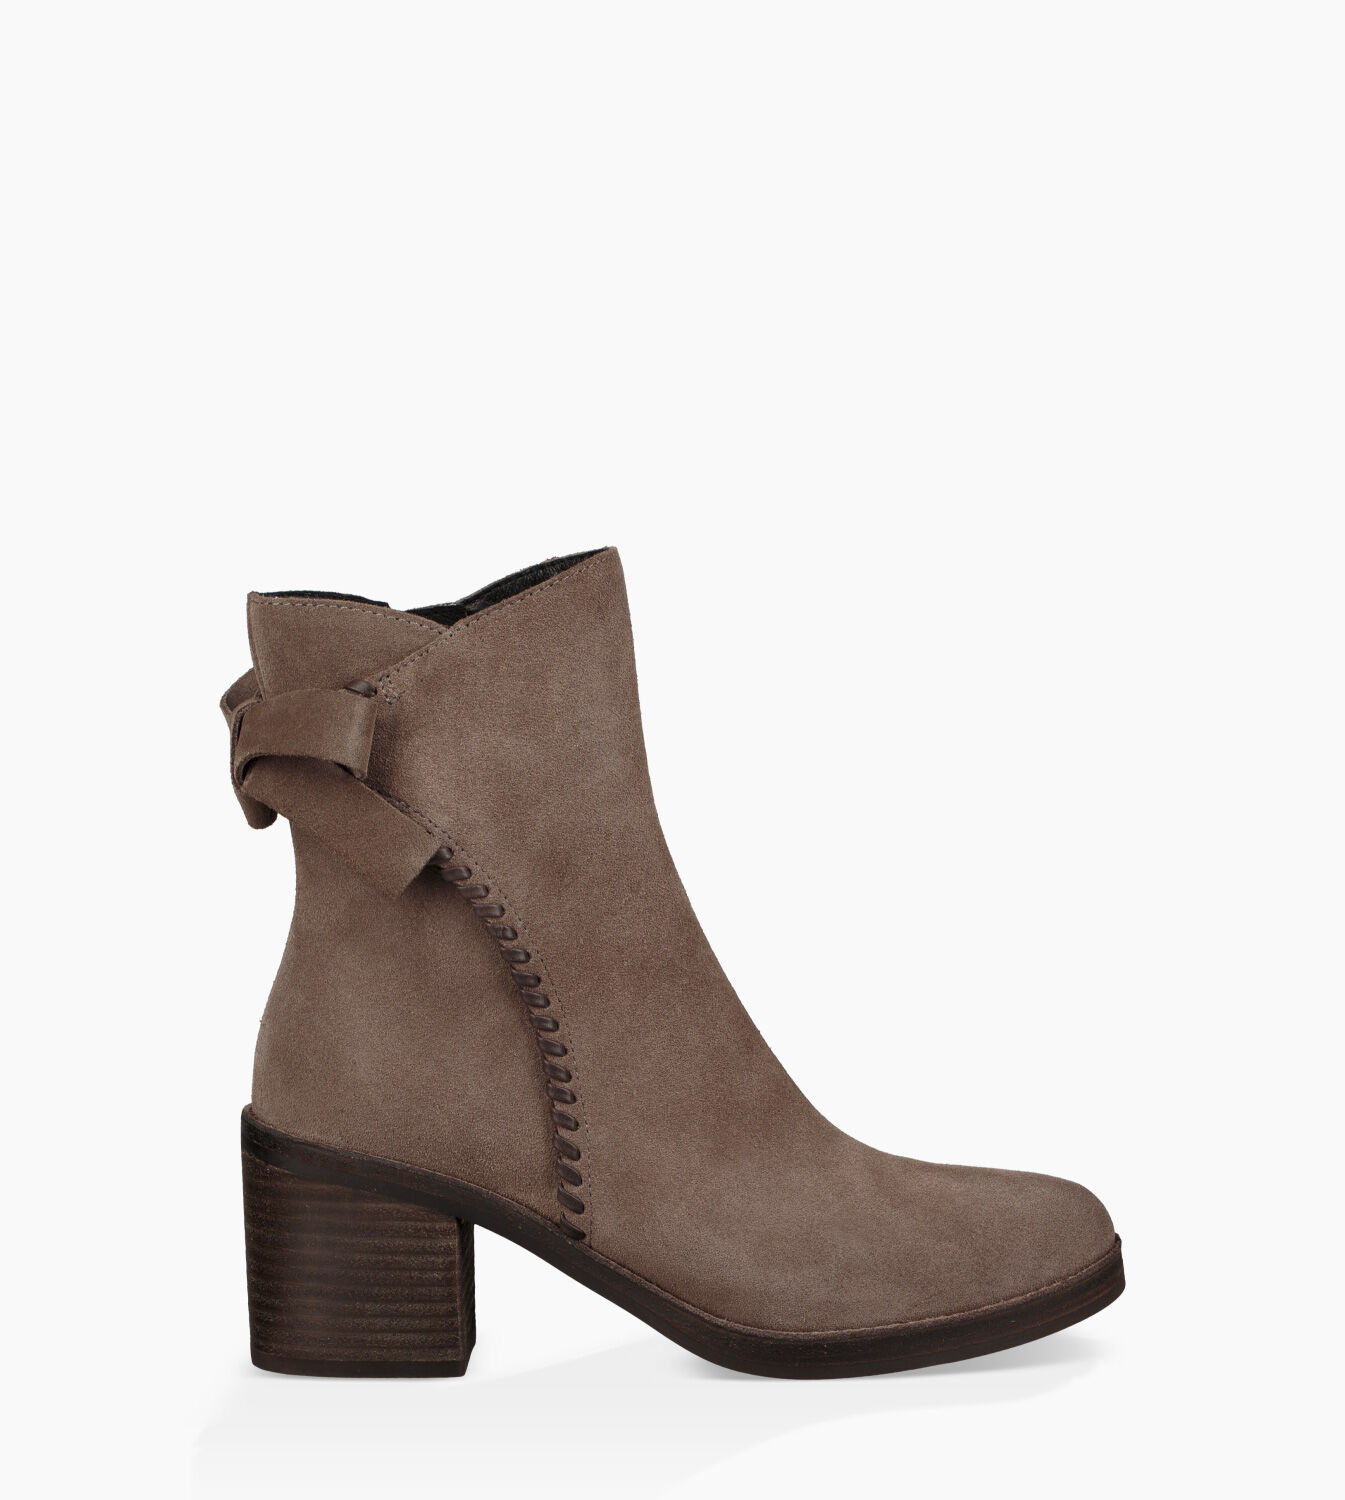 UGG Women's Fraise Whipstitch Suede Heeled Ankle Boots - Mouse - UK 7.5 6kvF8b